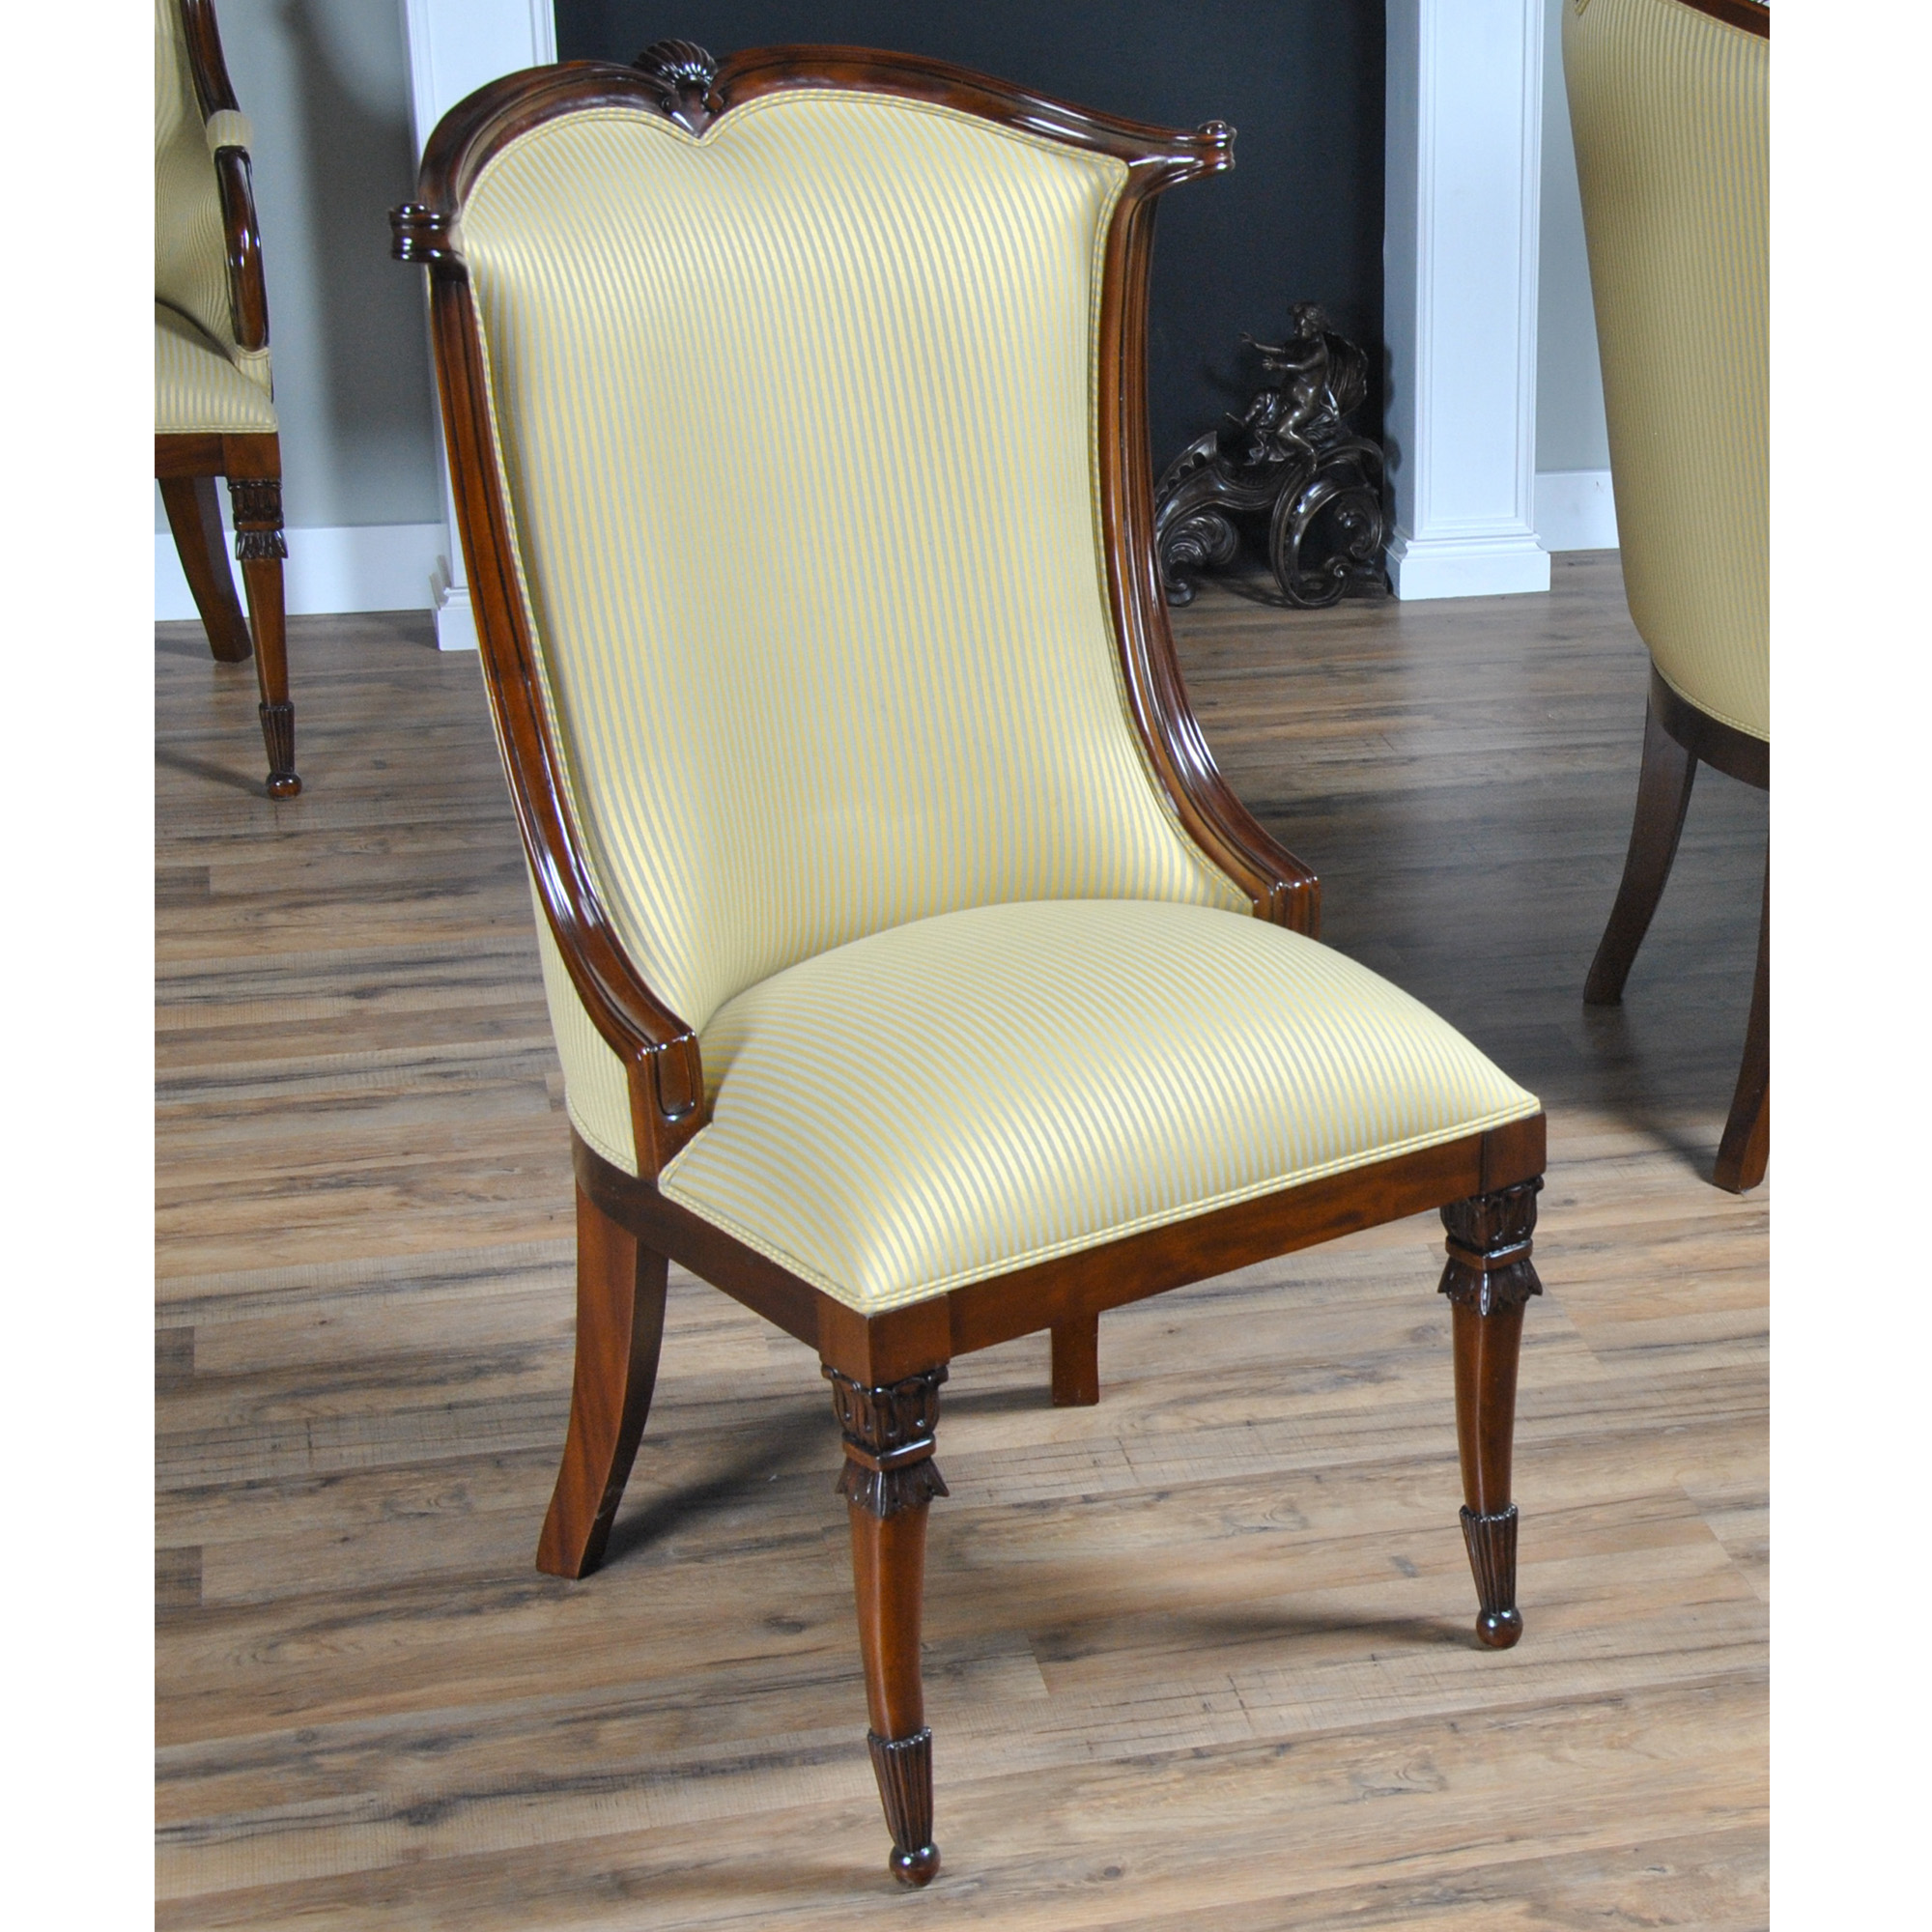 Dining Room End Chairs: American Upholstered Side Chair, Niagara Furniture, High End